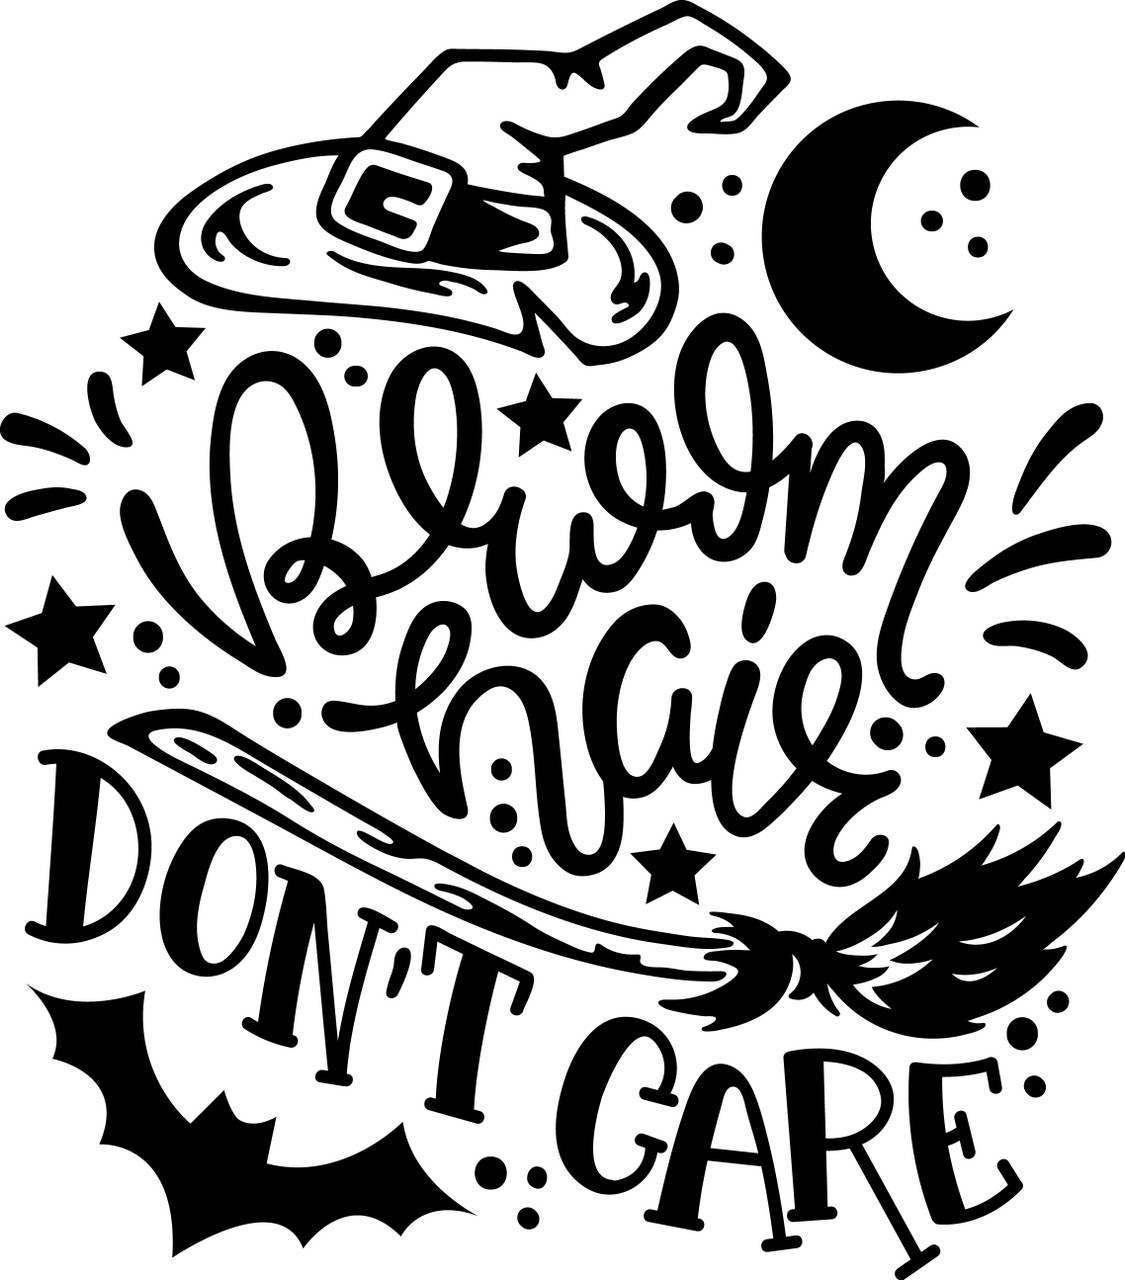 Free Broom Hair Don T Care Svg Cut File Craftables